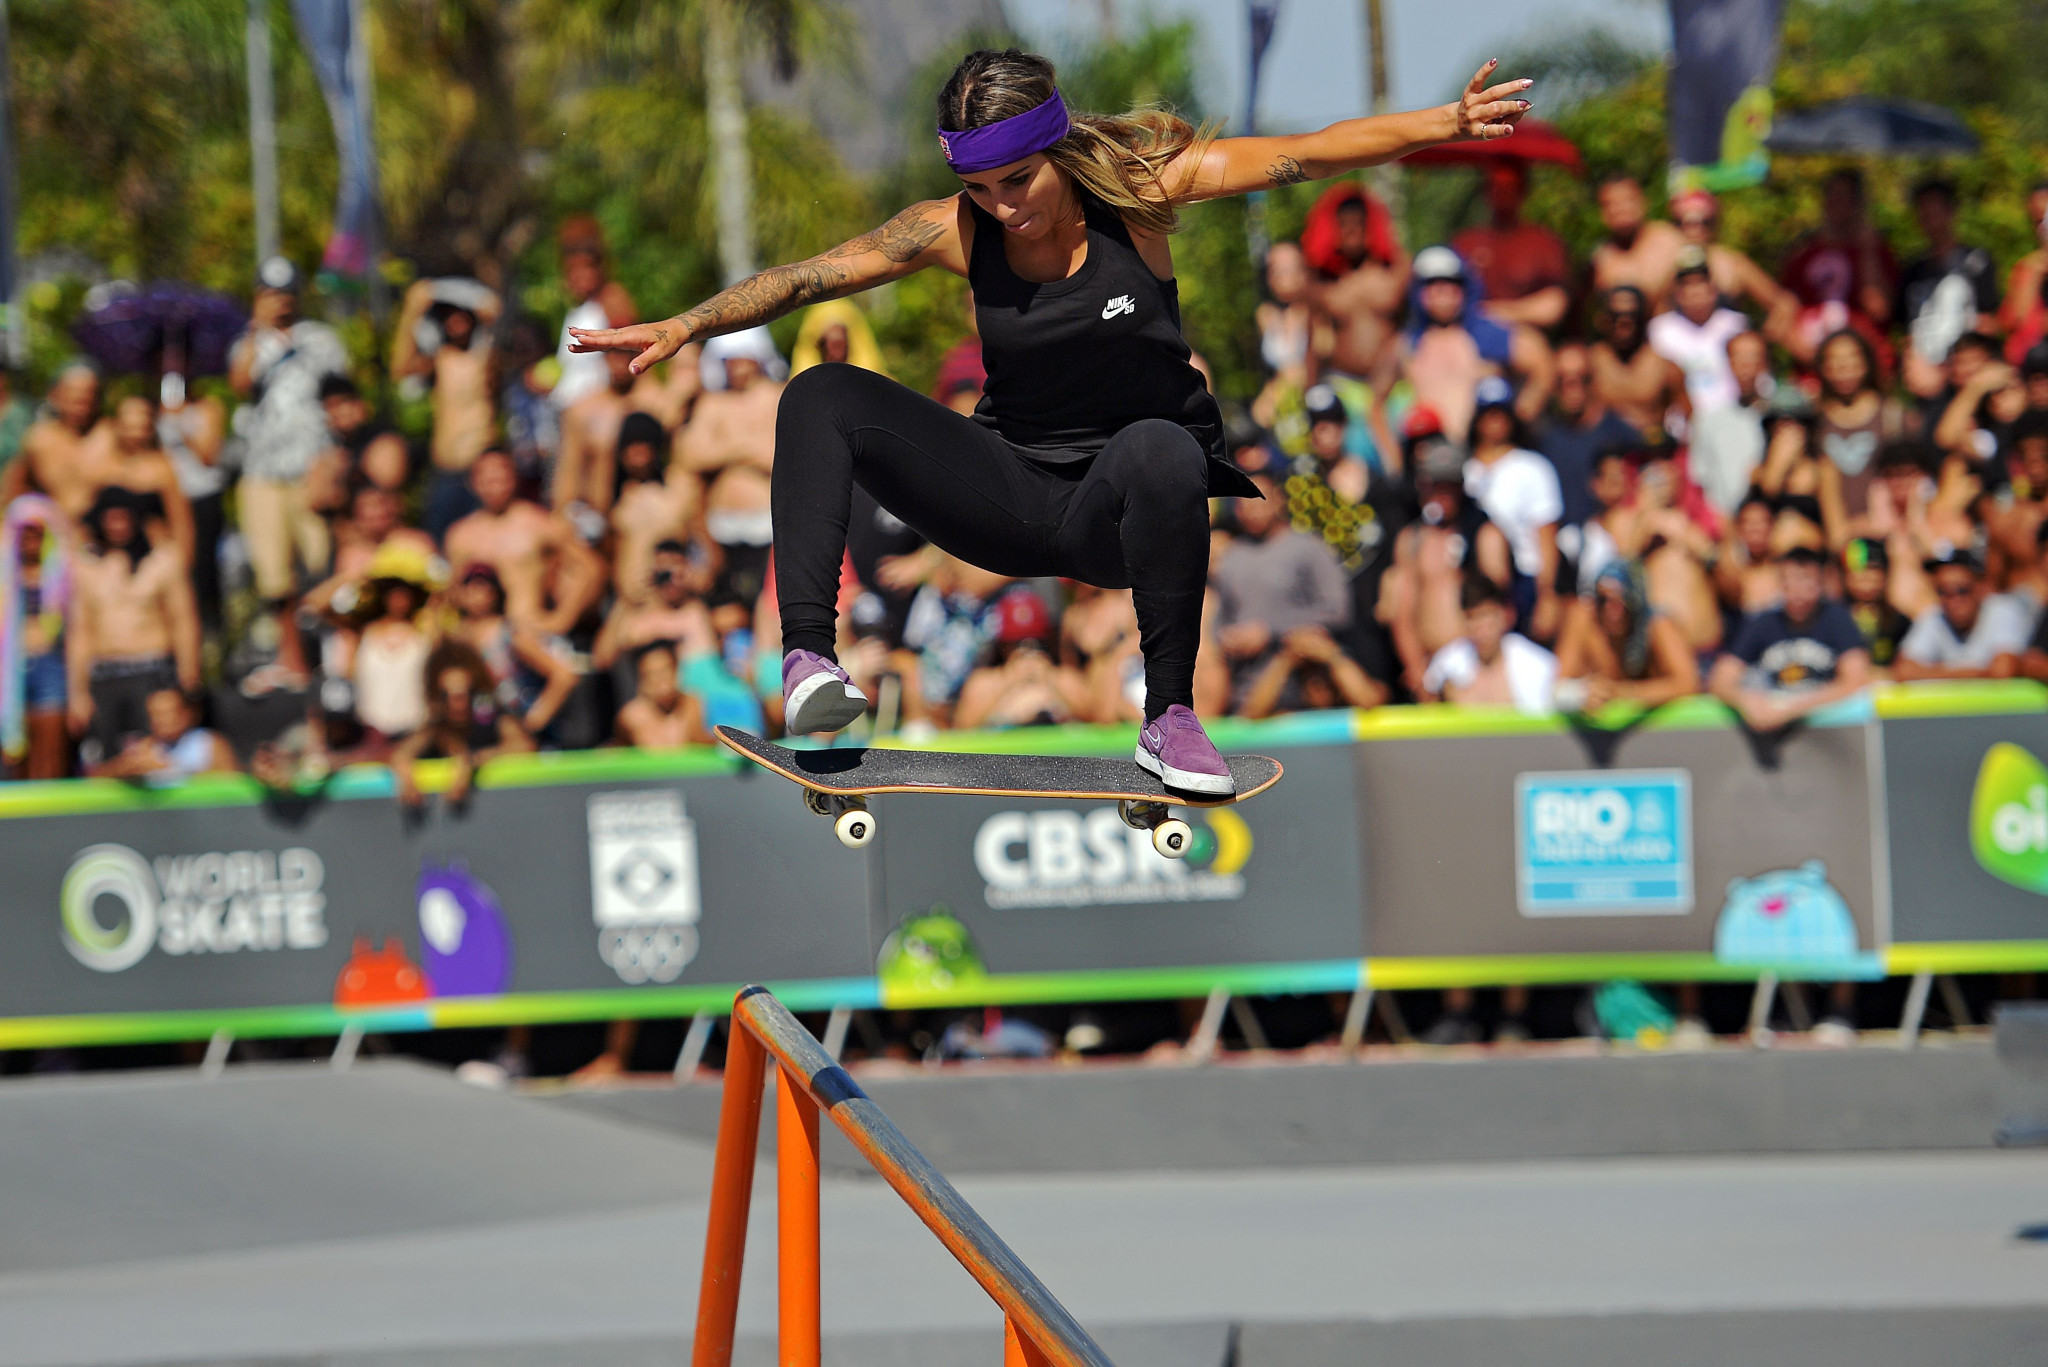 R-Willy retains BMX big air title at Shanghai X Games as Bufoni adds